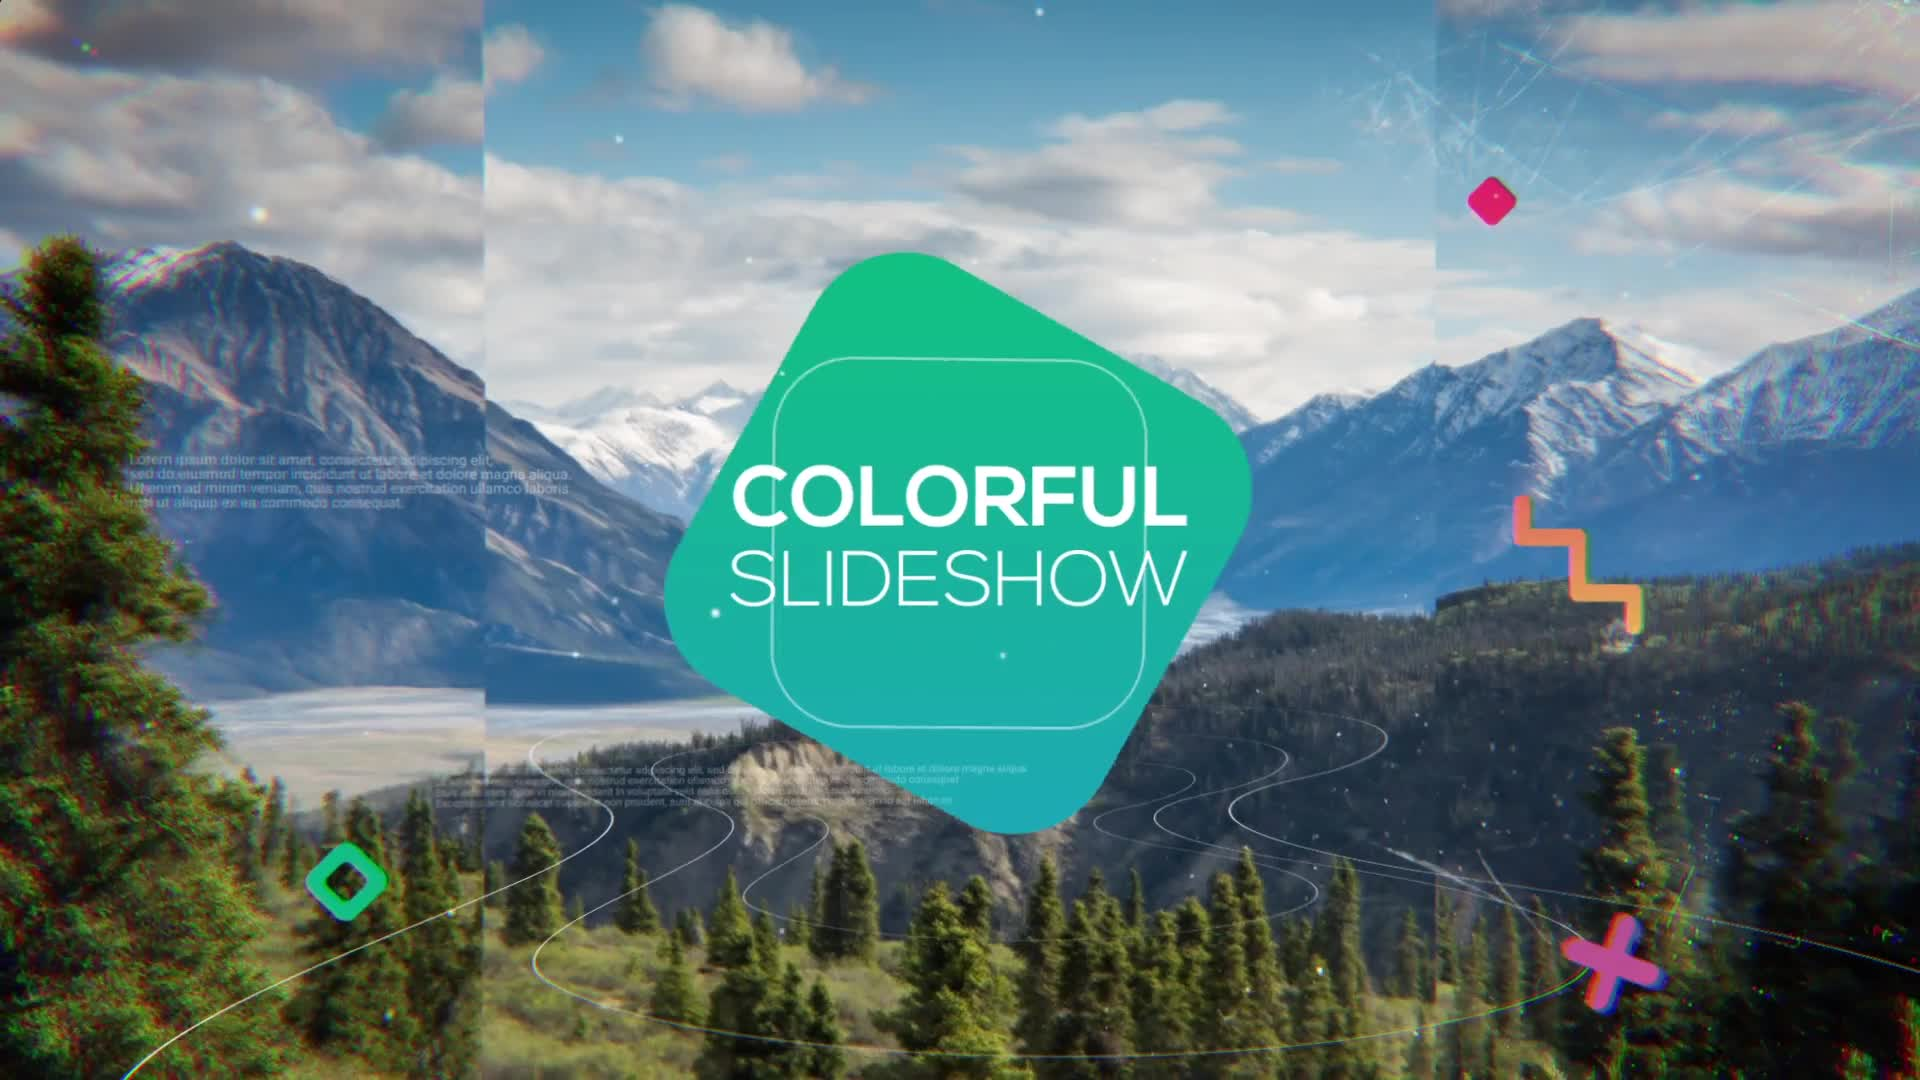 Colorful Slideshow - Download Videohive 18943037